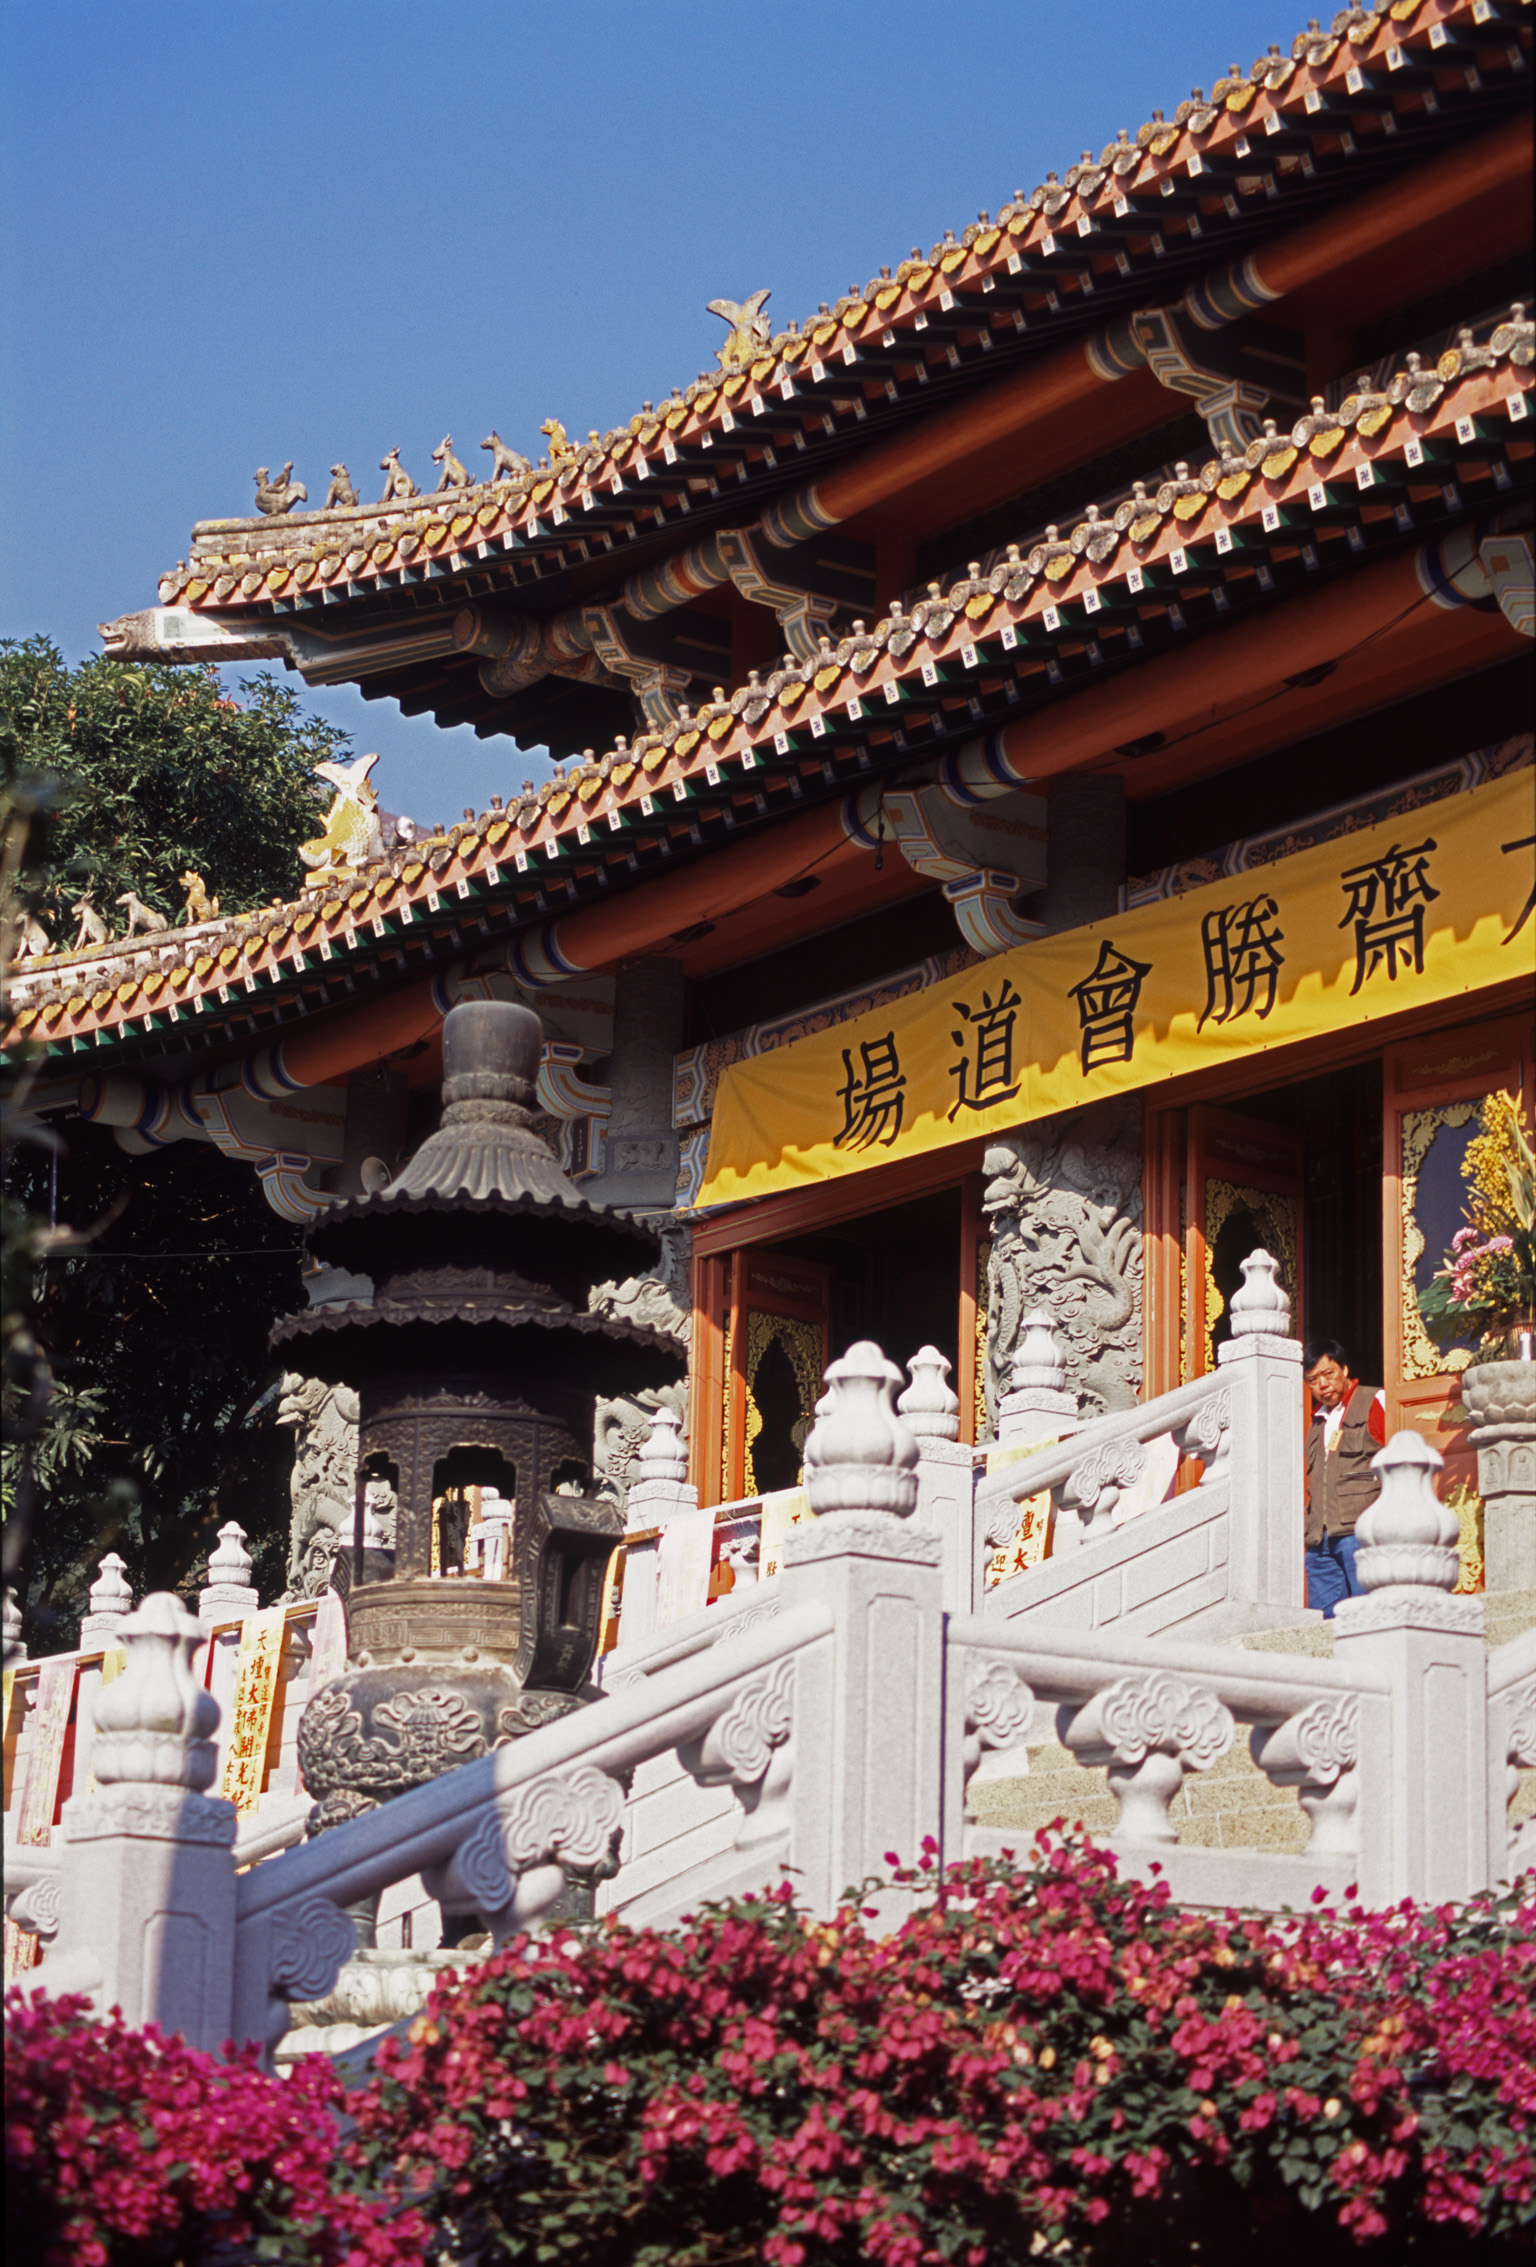 Architectural Exterior Design of Vintage Buddhist Temple Building in China.